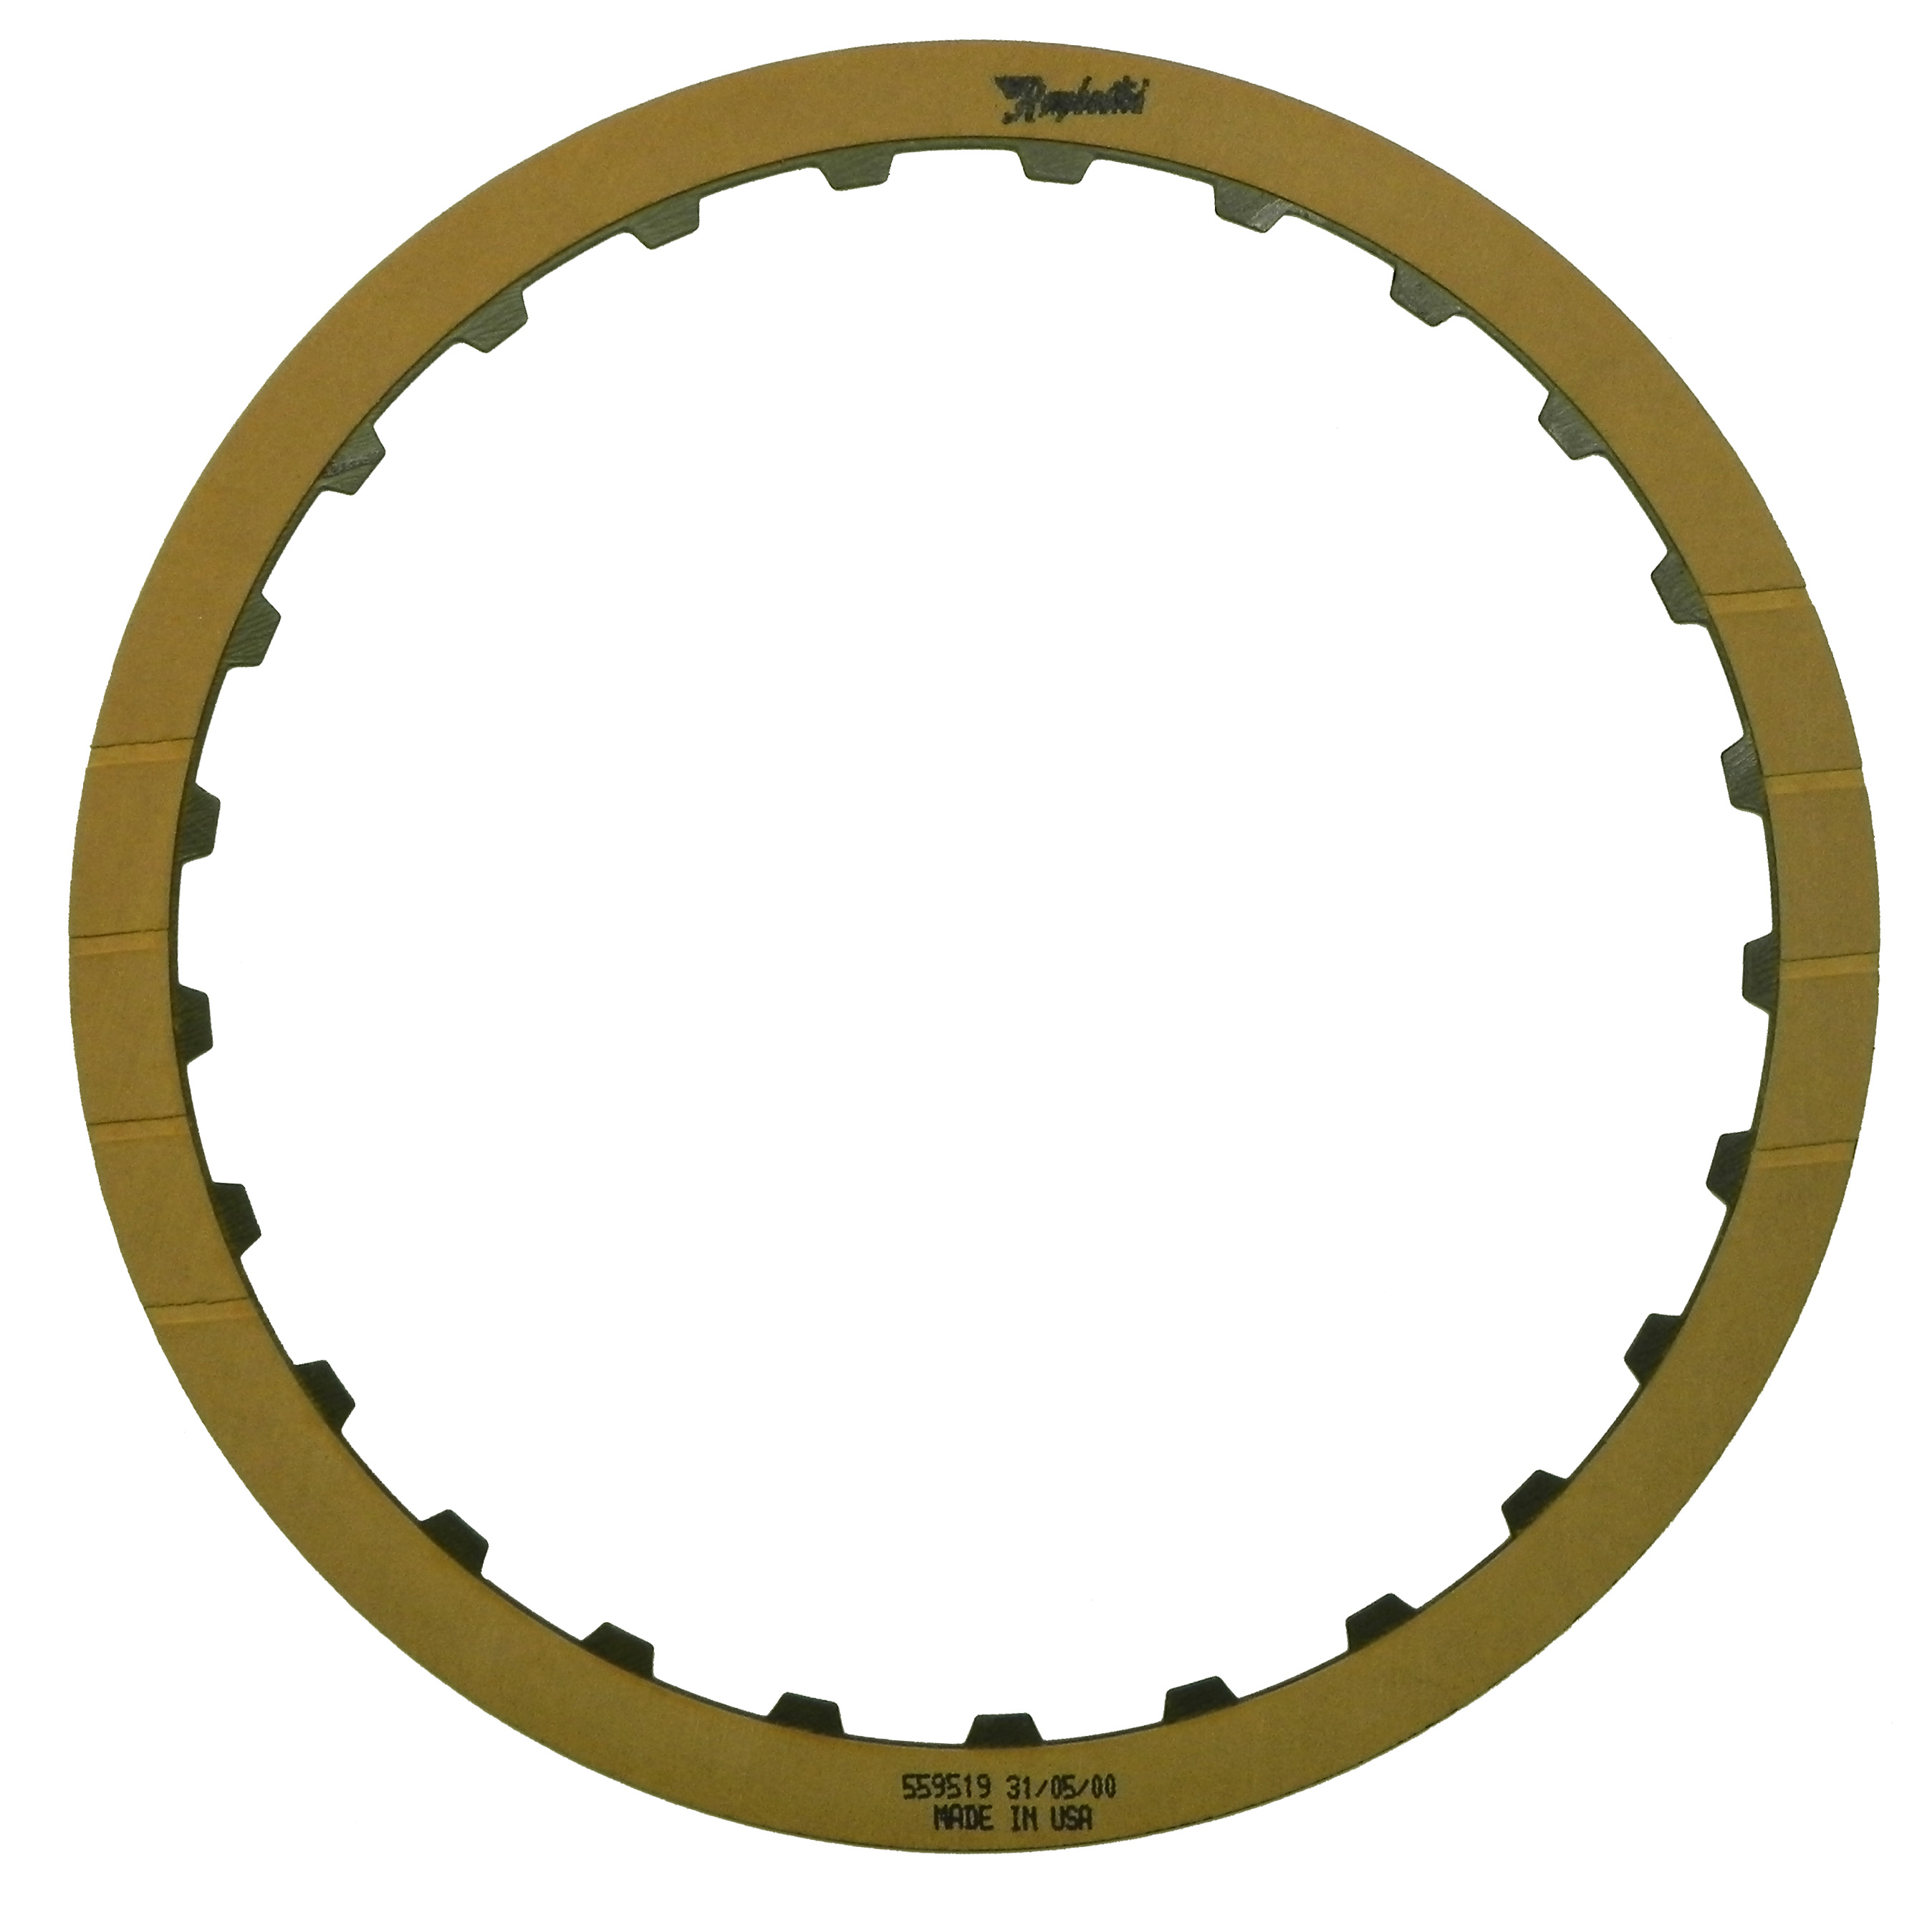 POWERGLIDE, TH250, TH250C, TH350, TH350C, TH375B, ST300 OE Replacement Friction Clutch Plate